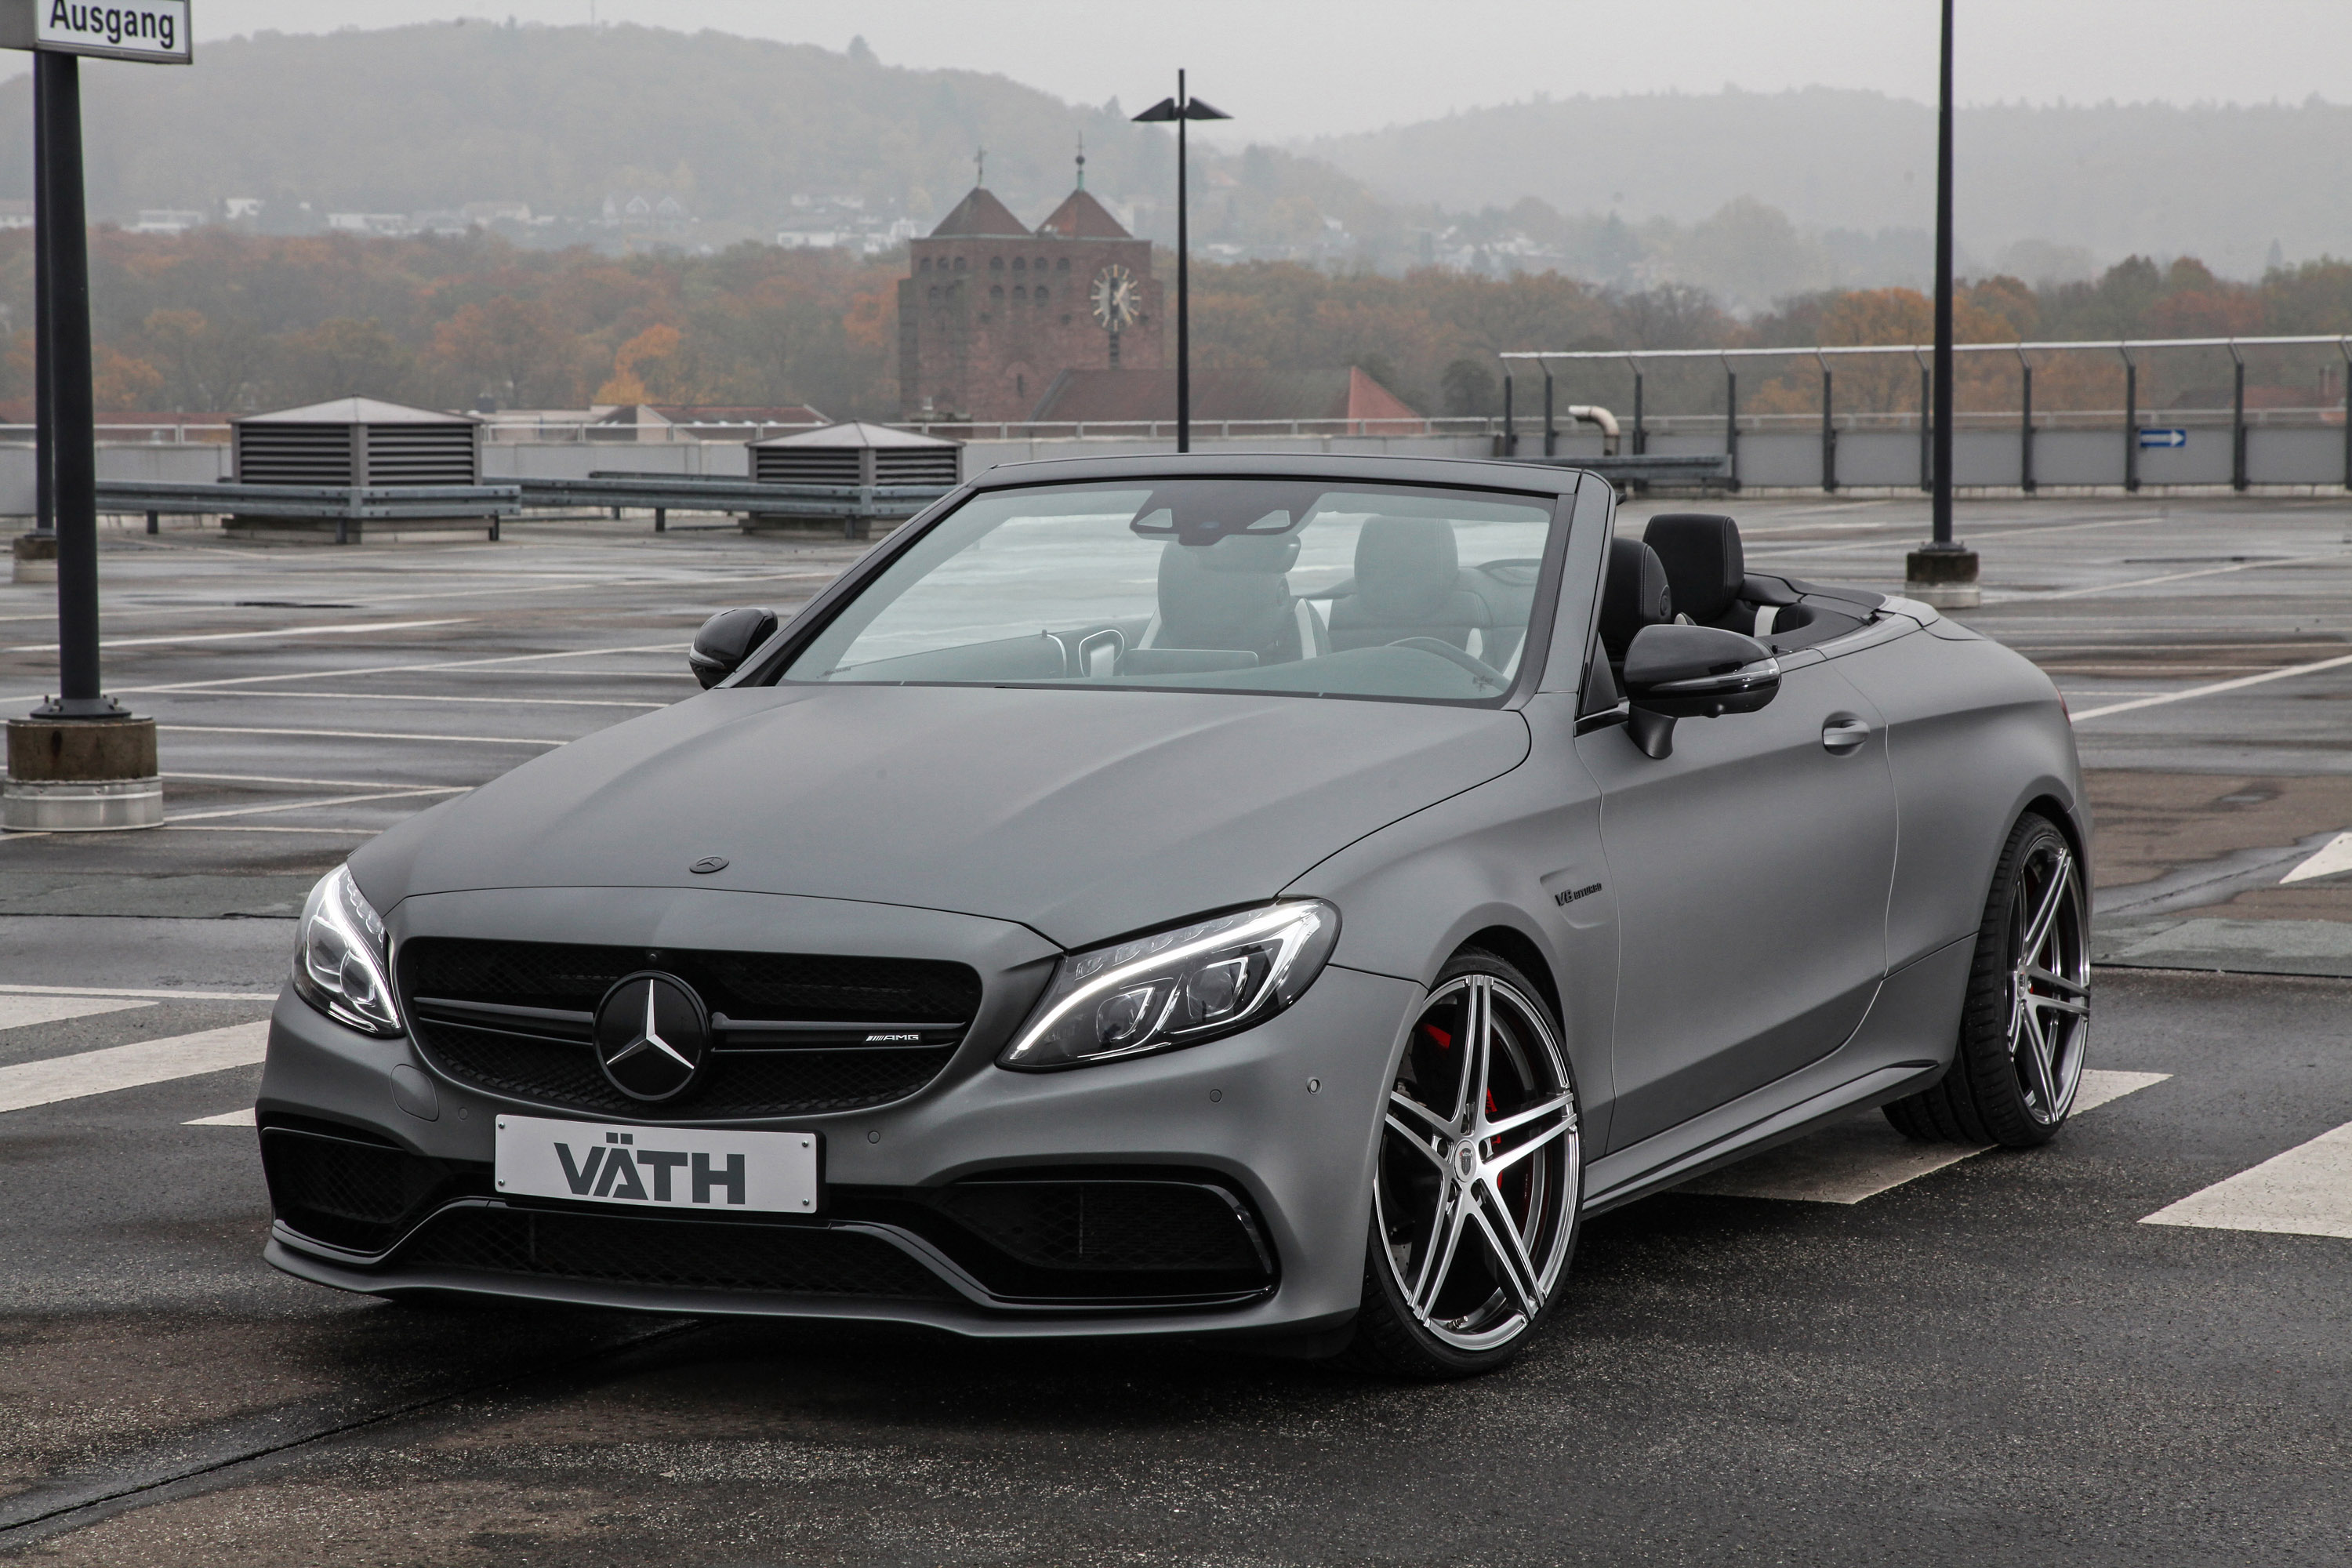 2018 Vath Mercedes Amg C Class Coupe And Cabriolet Picture 135380